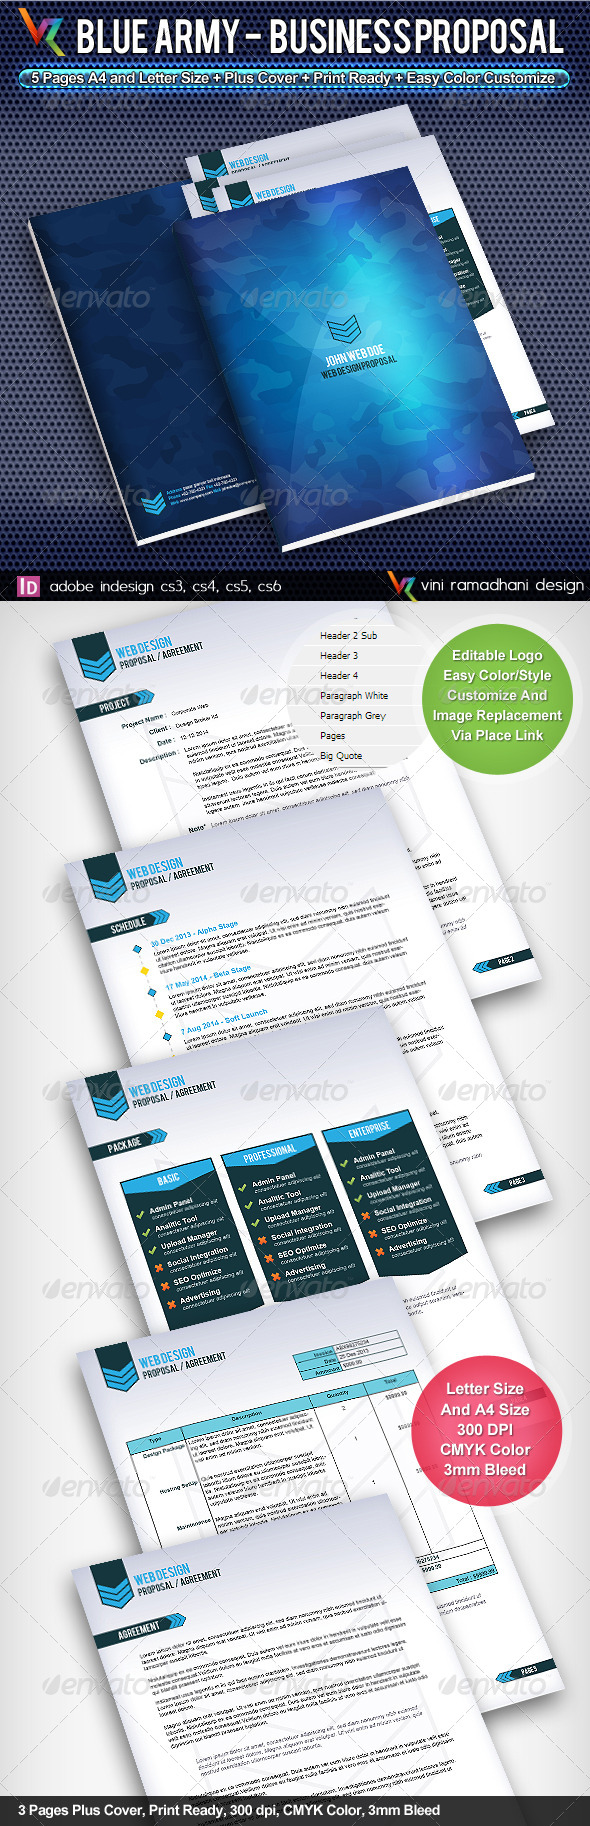 Blue Army Business Proposal - Proposals & Invoices Stationery